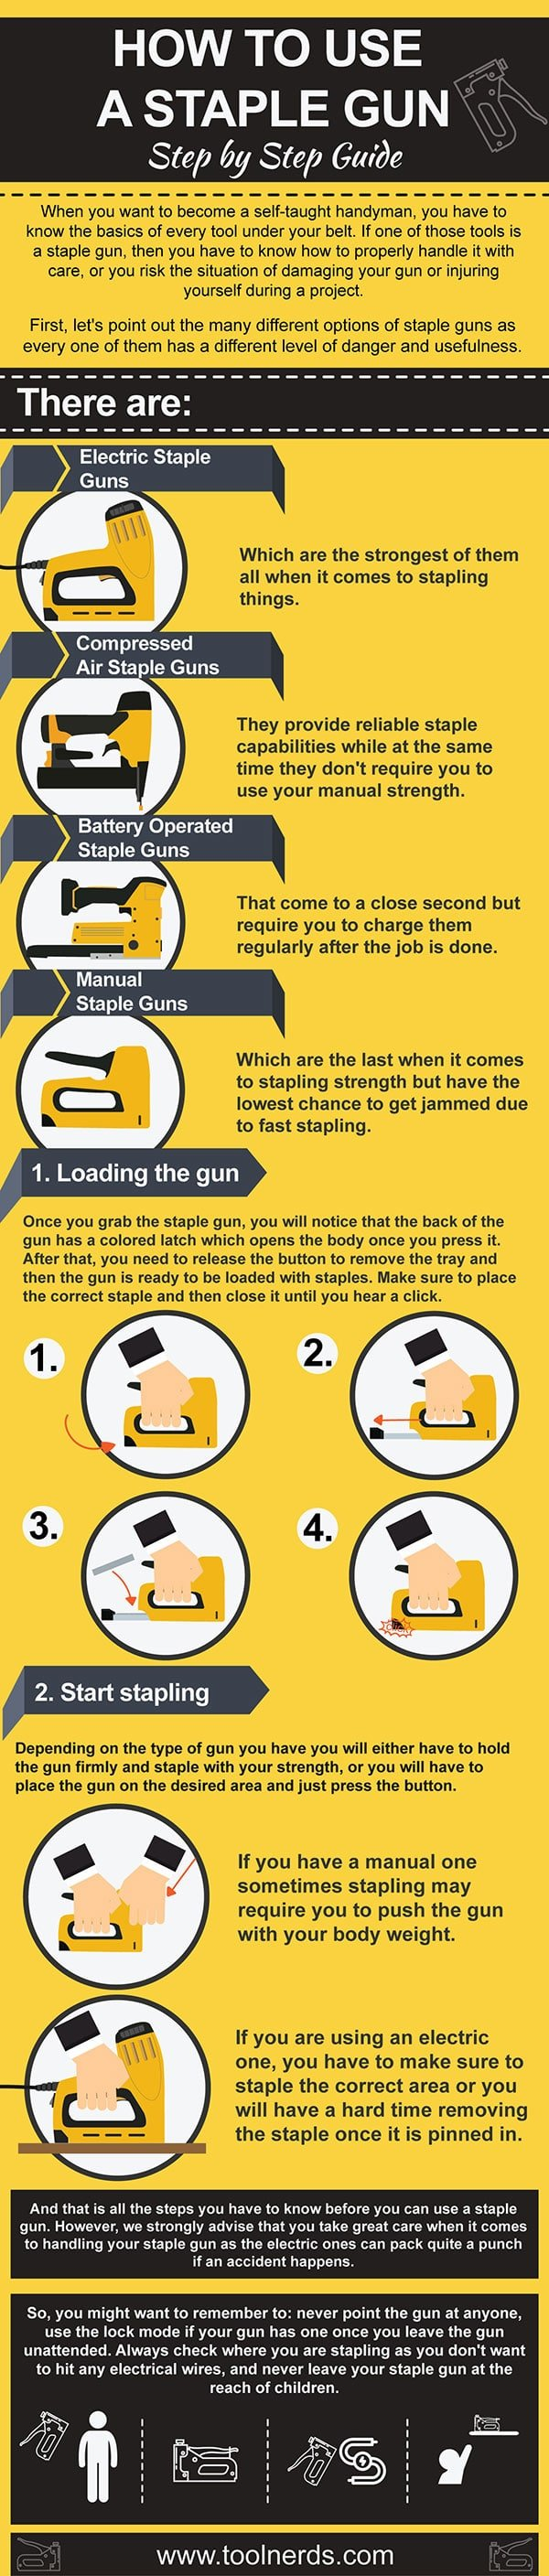 guide to handling a staple gun